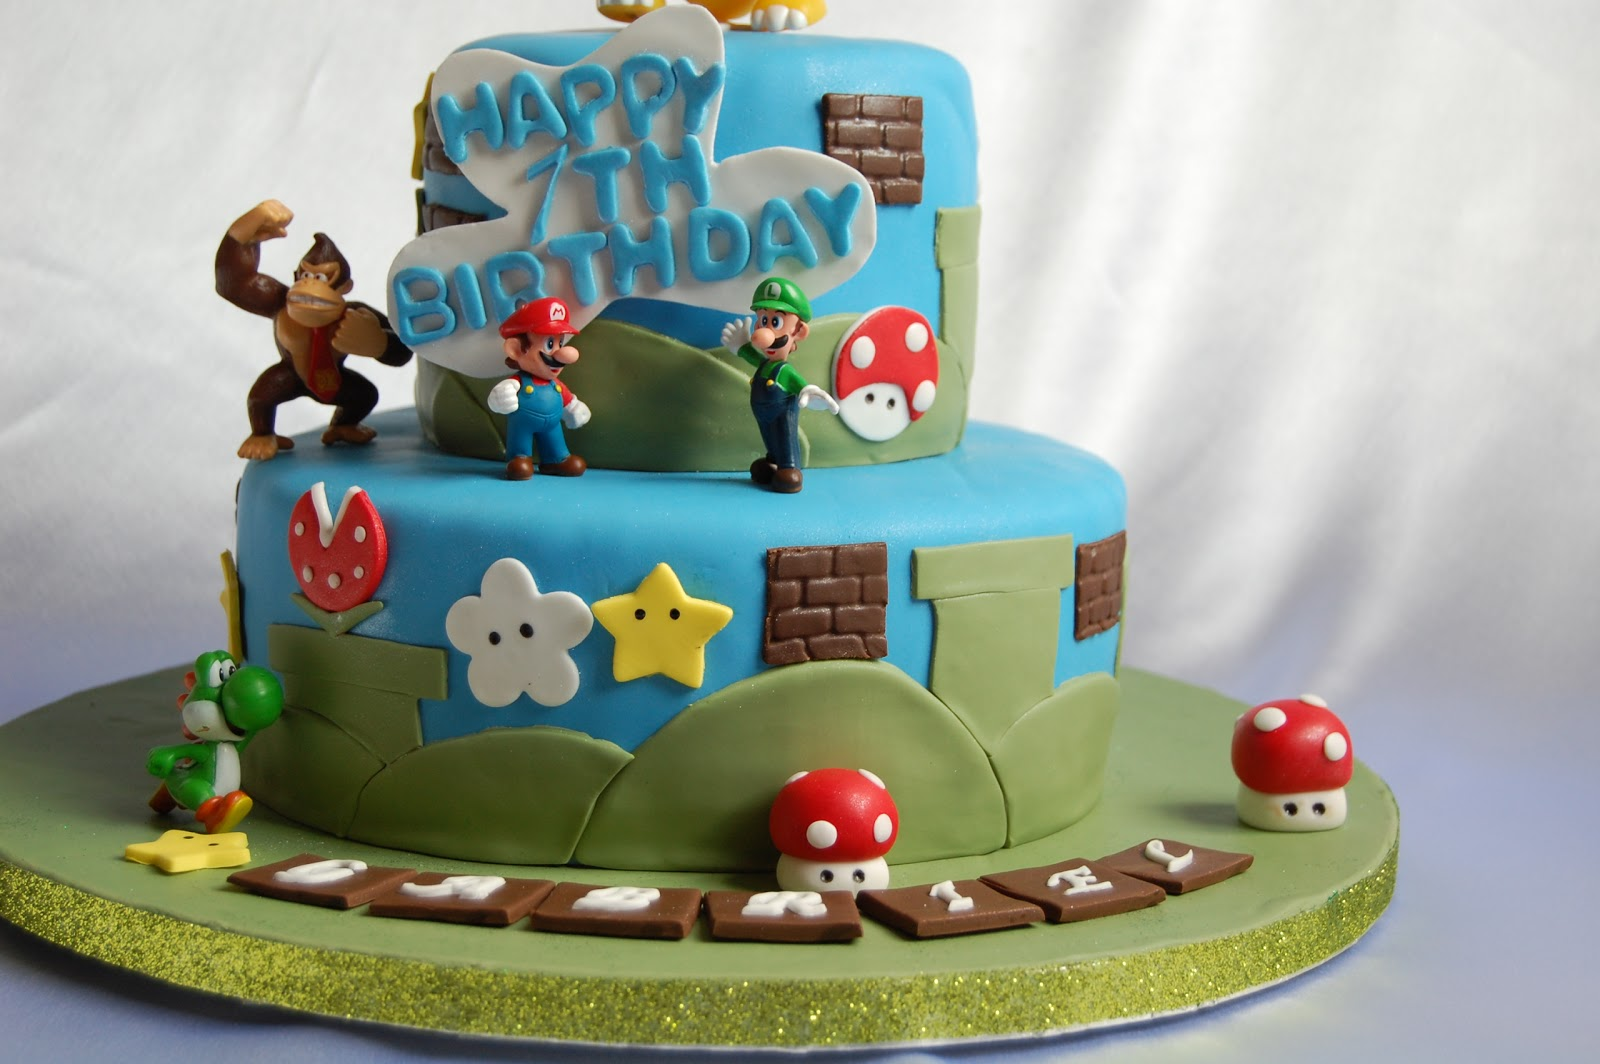 CUSTOMISED CAKES BY JEN Bowser Cake - Bowser birthday cake